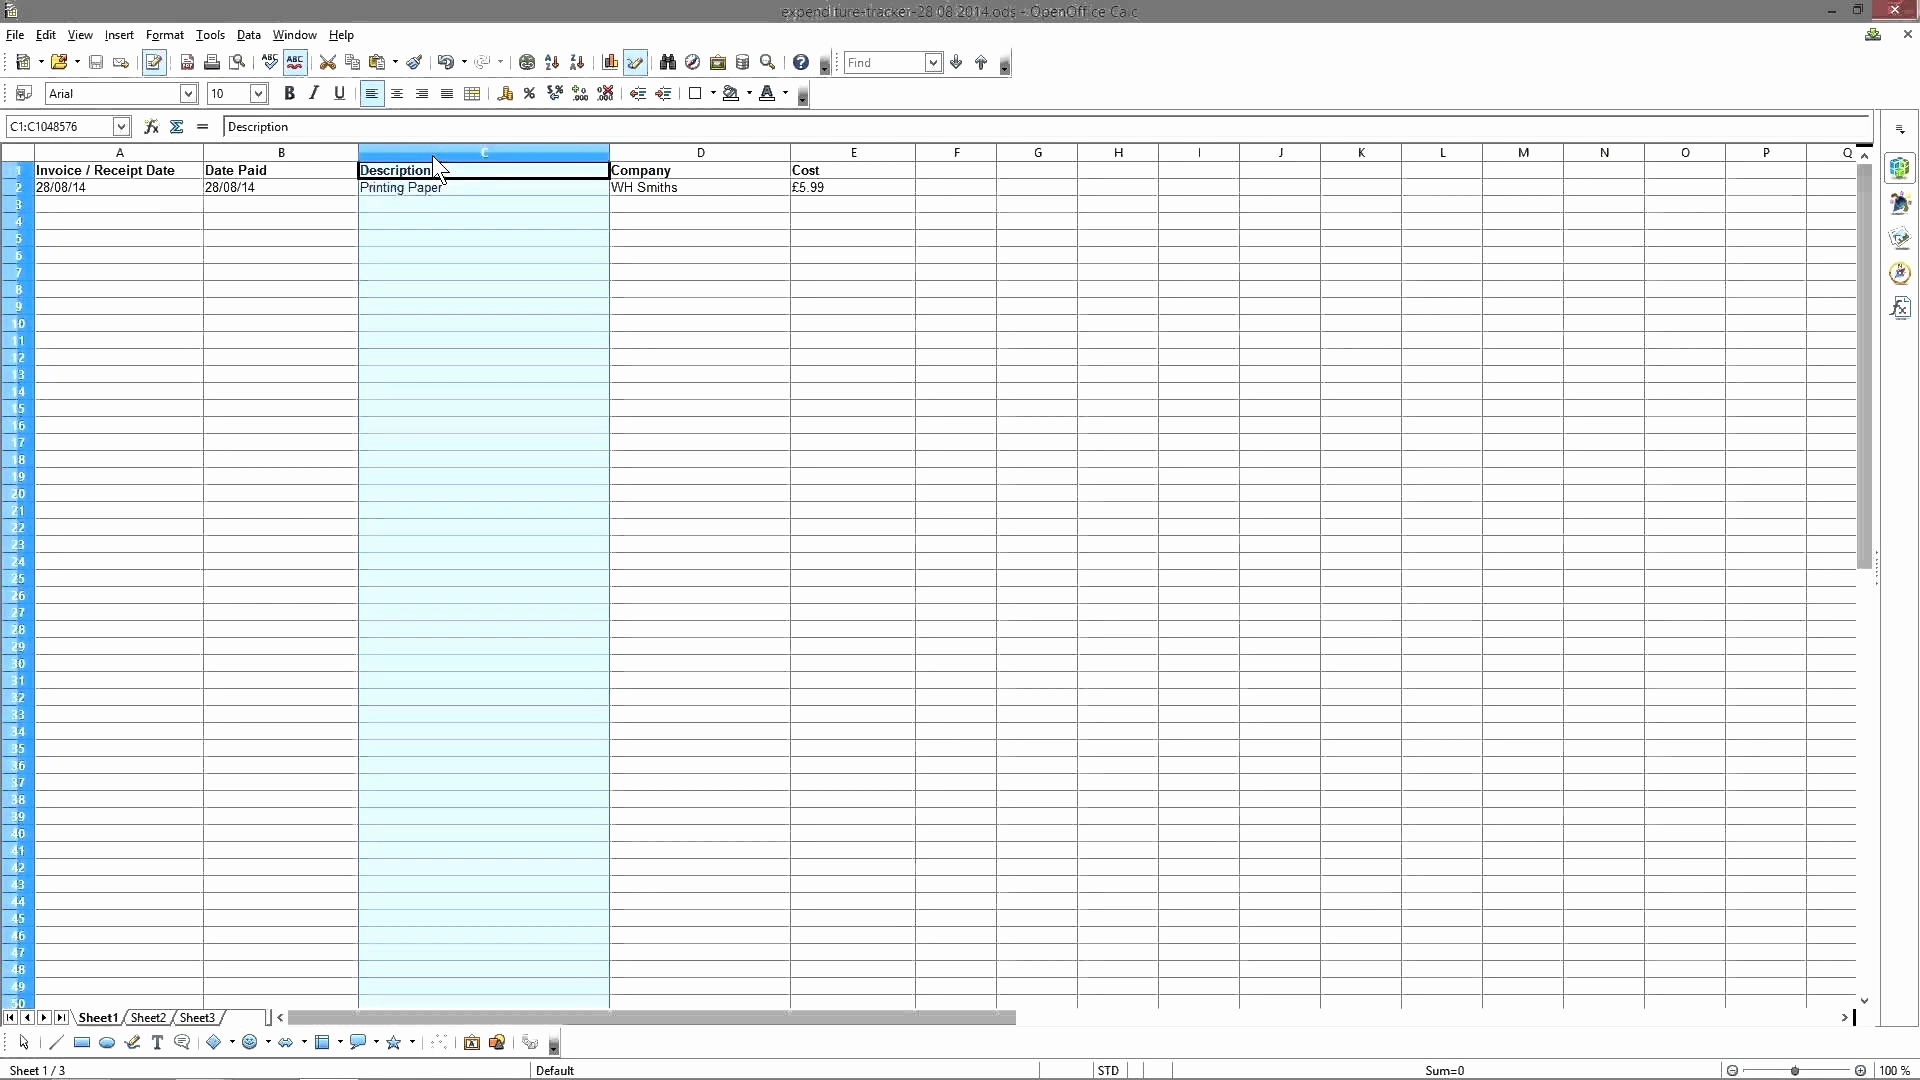 Contract Renewal Tracking Spreadsheet Regarding Contract Tracking Excel Template Awesome Contract Tracking For